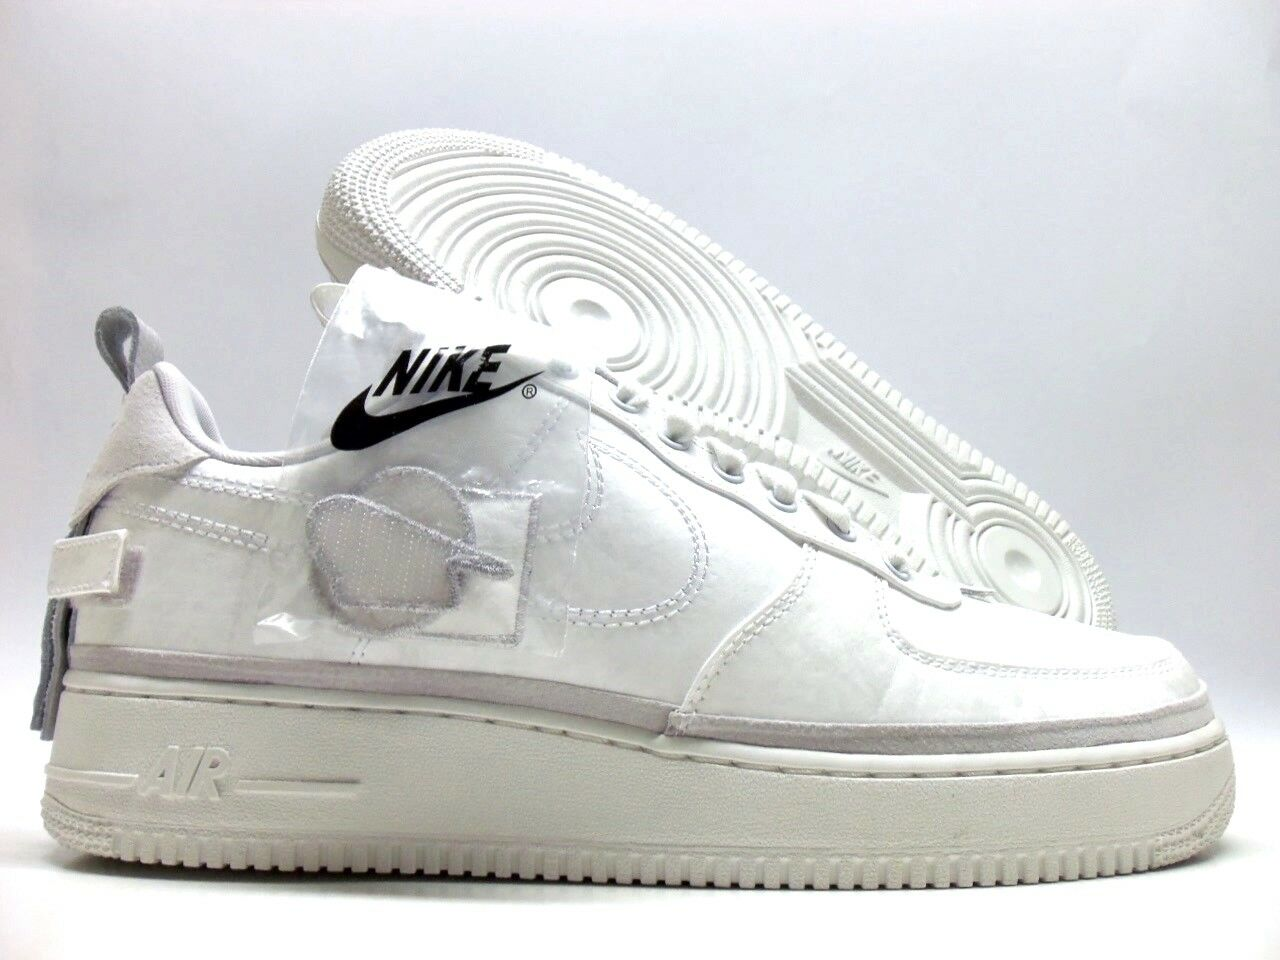 NIKE AIR FORCE 1 '07 AS QS ALL STAR VAST GREY WHITE SIZE MEN'S 12 [AH6767-001]